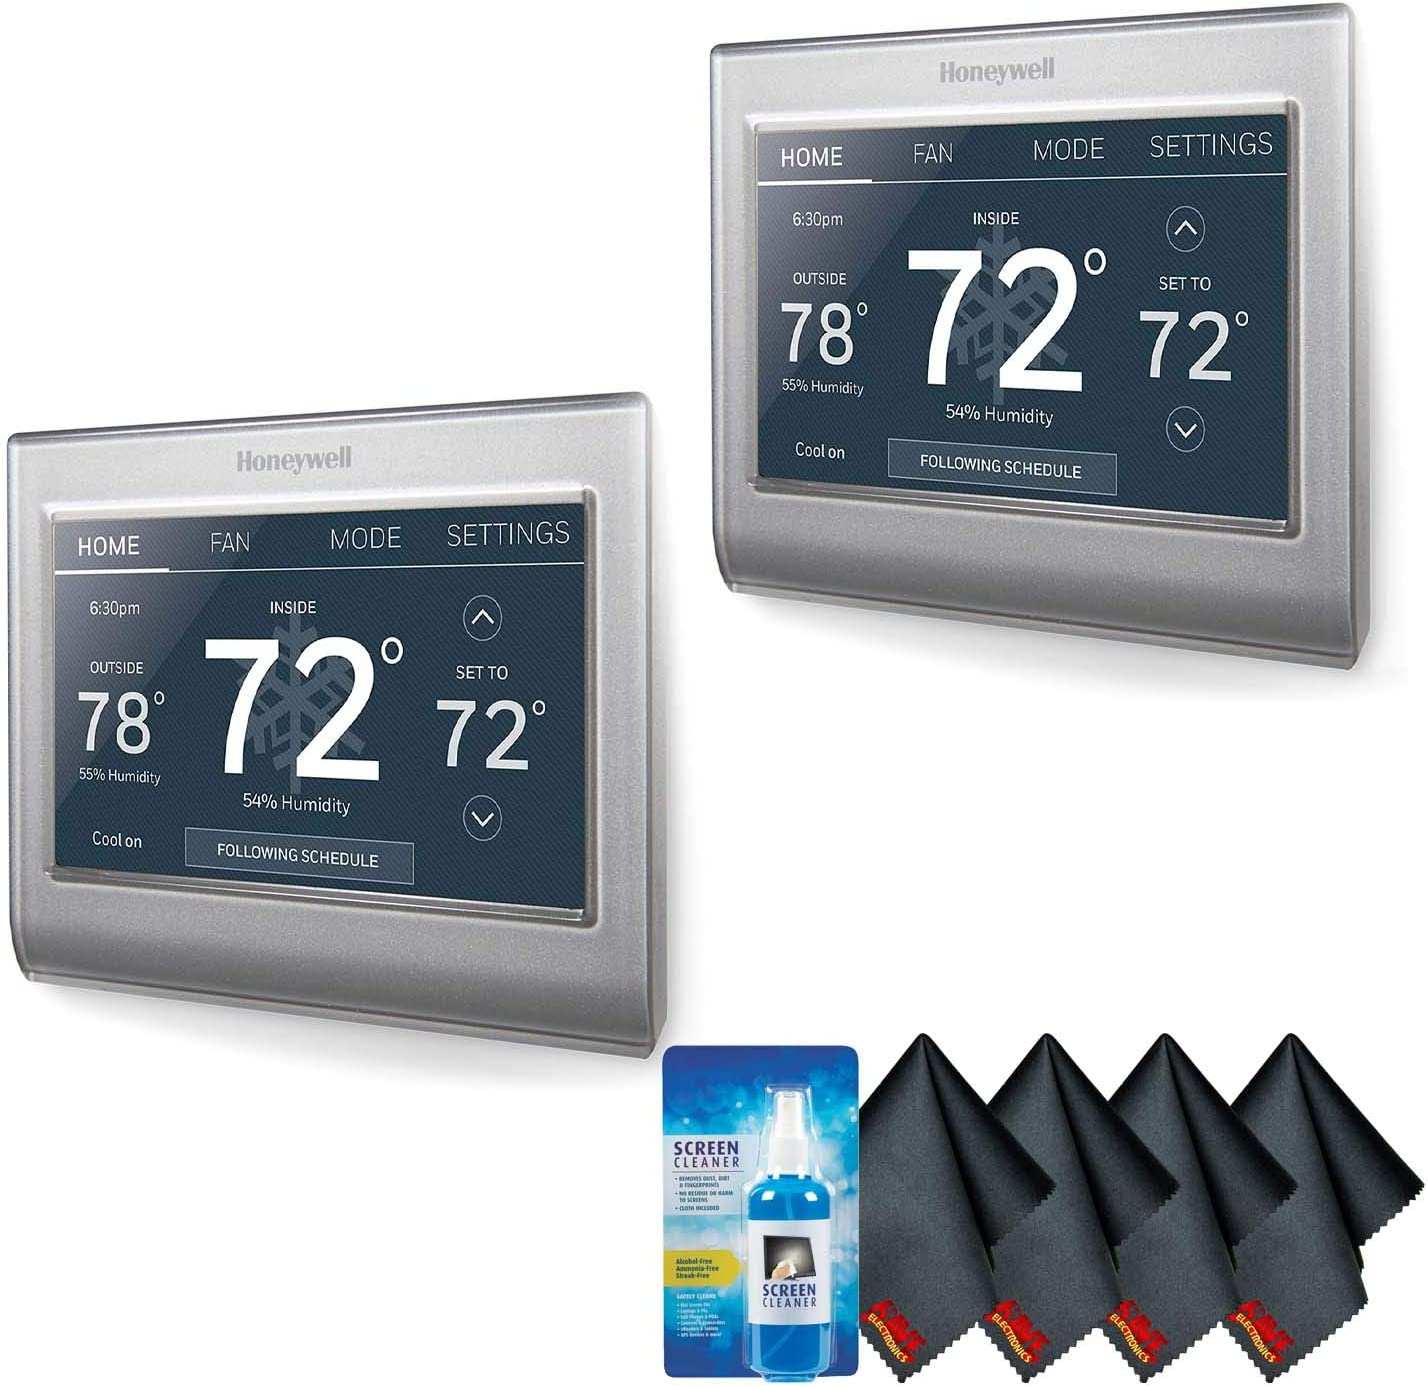 Honeywell Home RTH9585WF1004 Wi-Fi Smart Color Thermostat (2-Pack) Accessory Kit with Screen Cleaning Kit